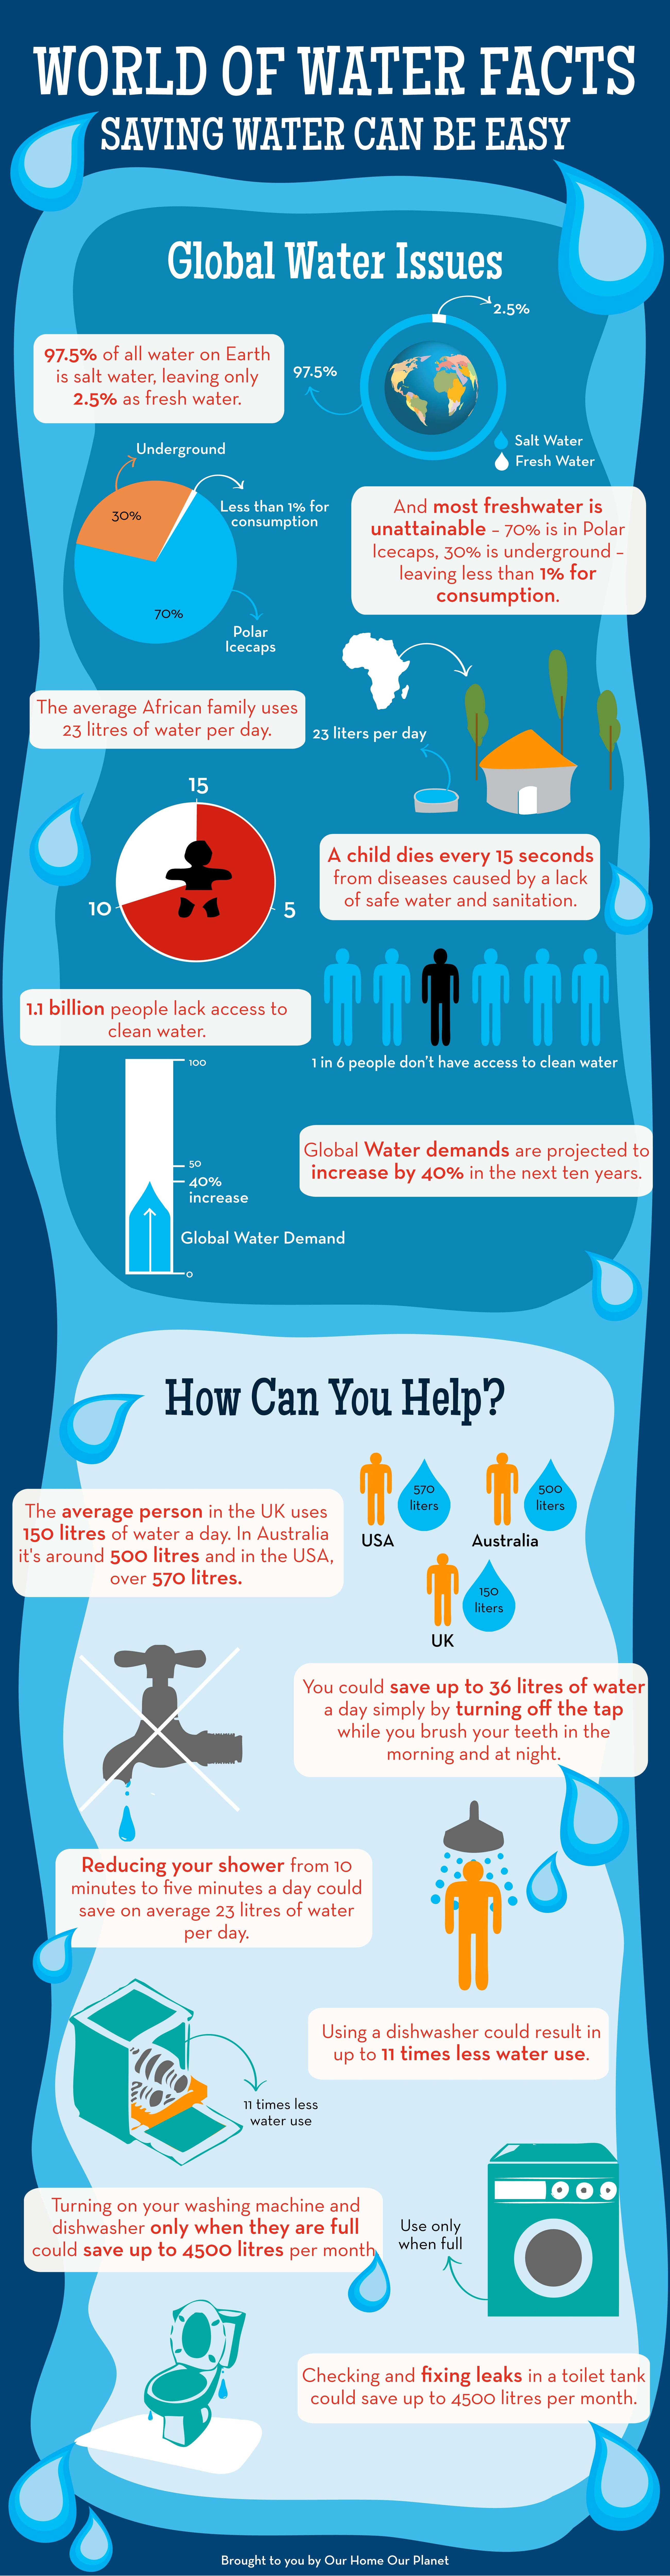 Global Water Facts And Saving Tips Water Facts